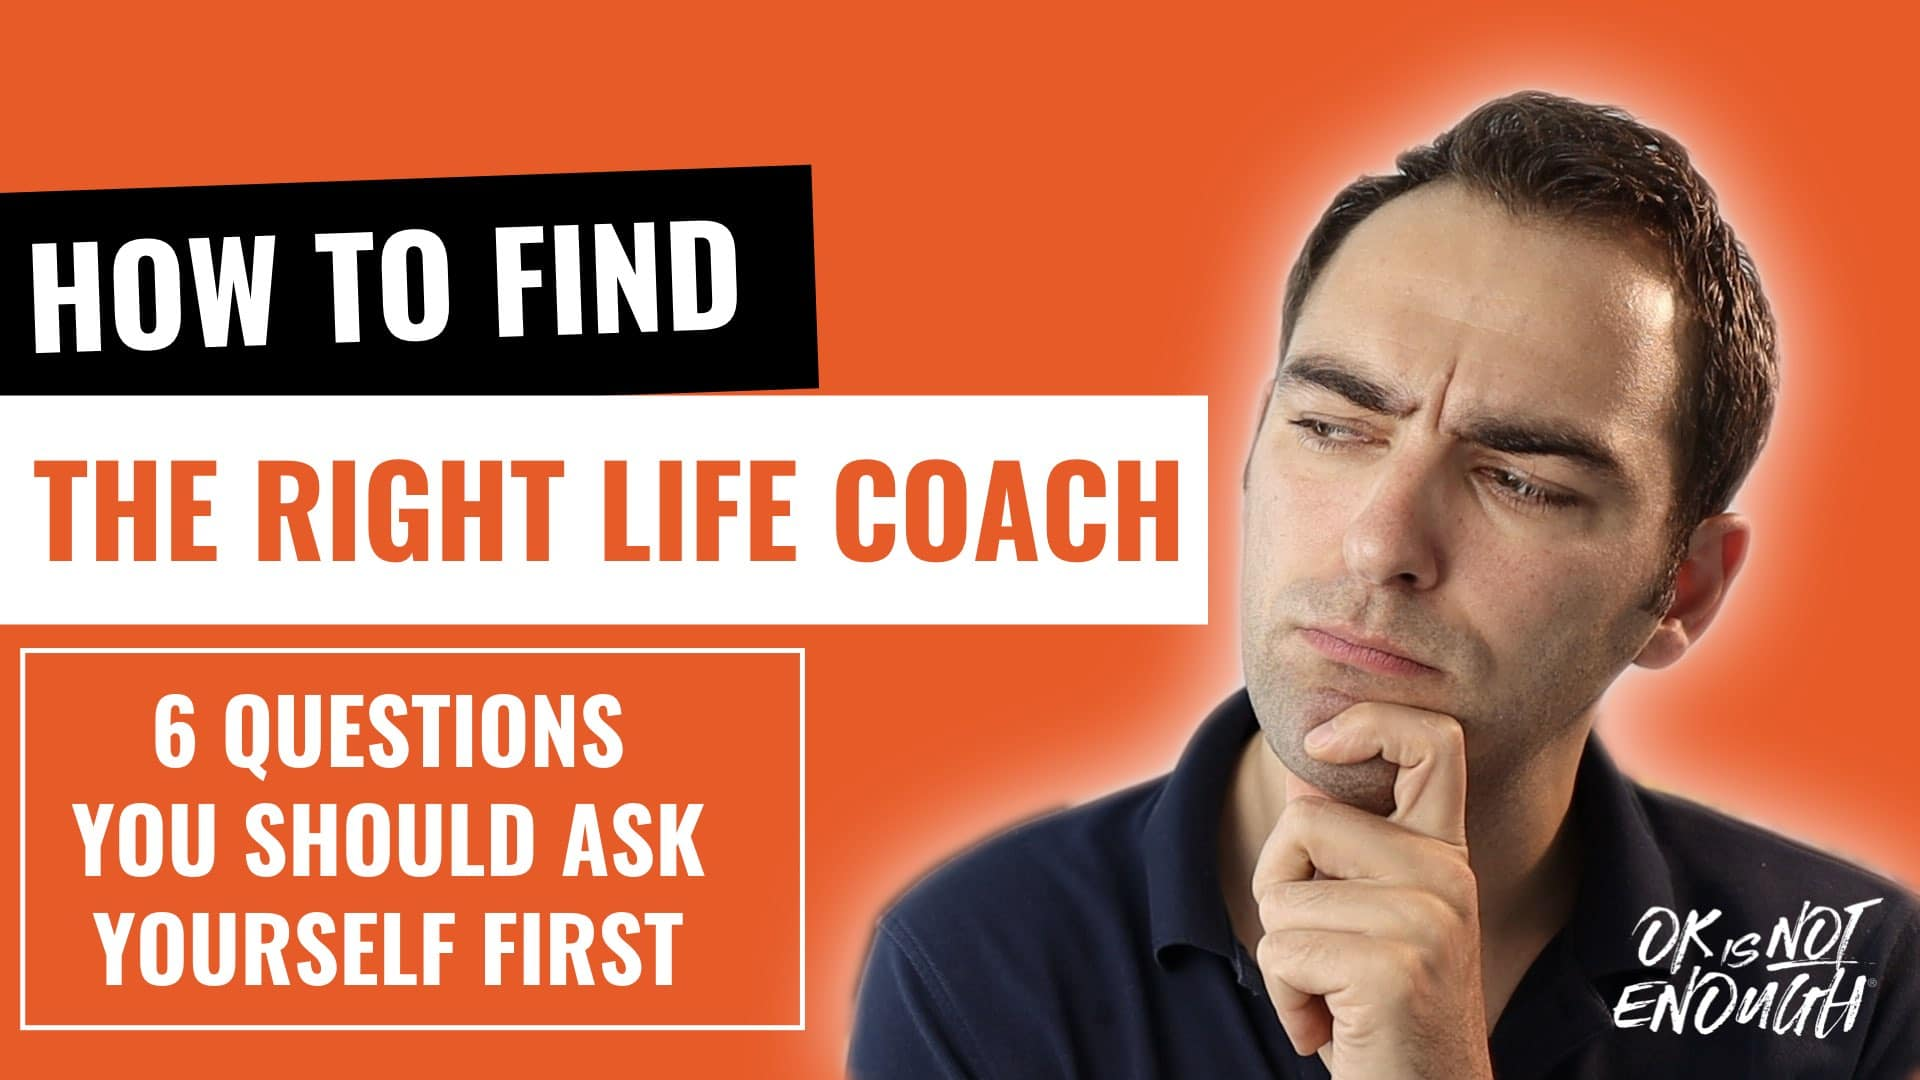 How to find the right life coach 2